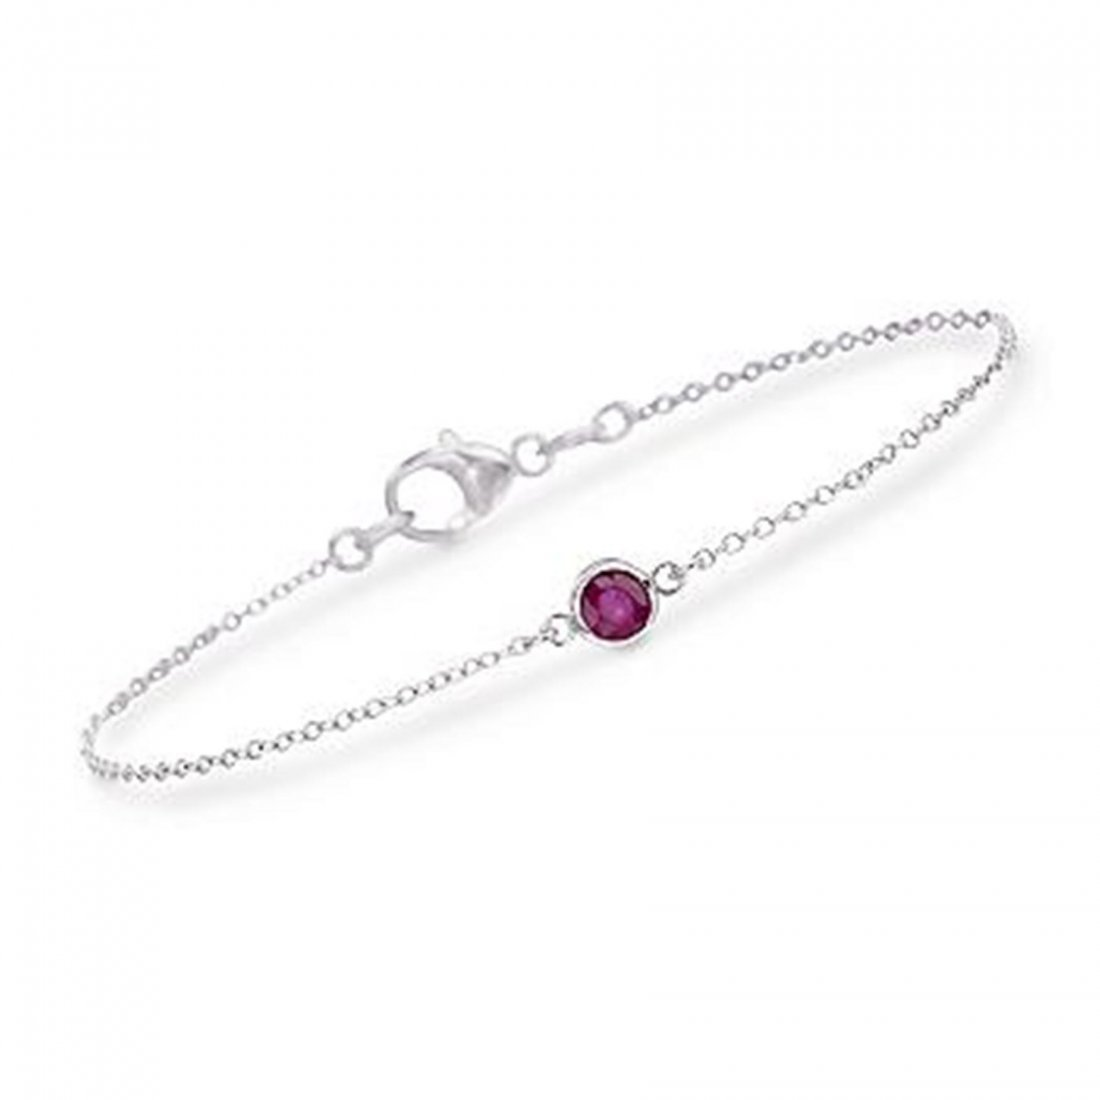 "4H: .25 Carat Ruby Bracelet in Sterling Silver. 7"" Item"